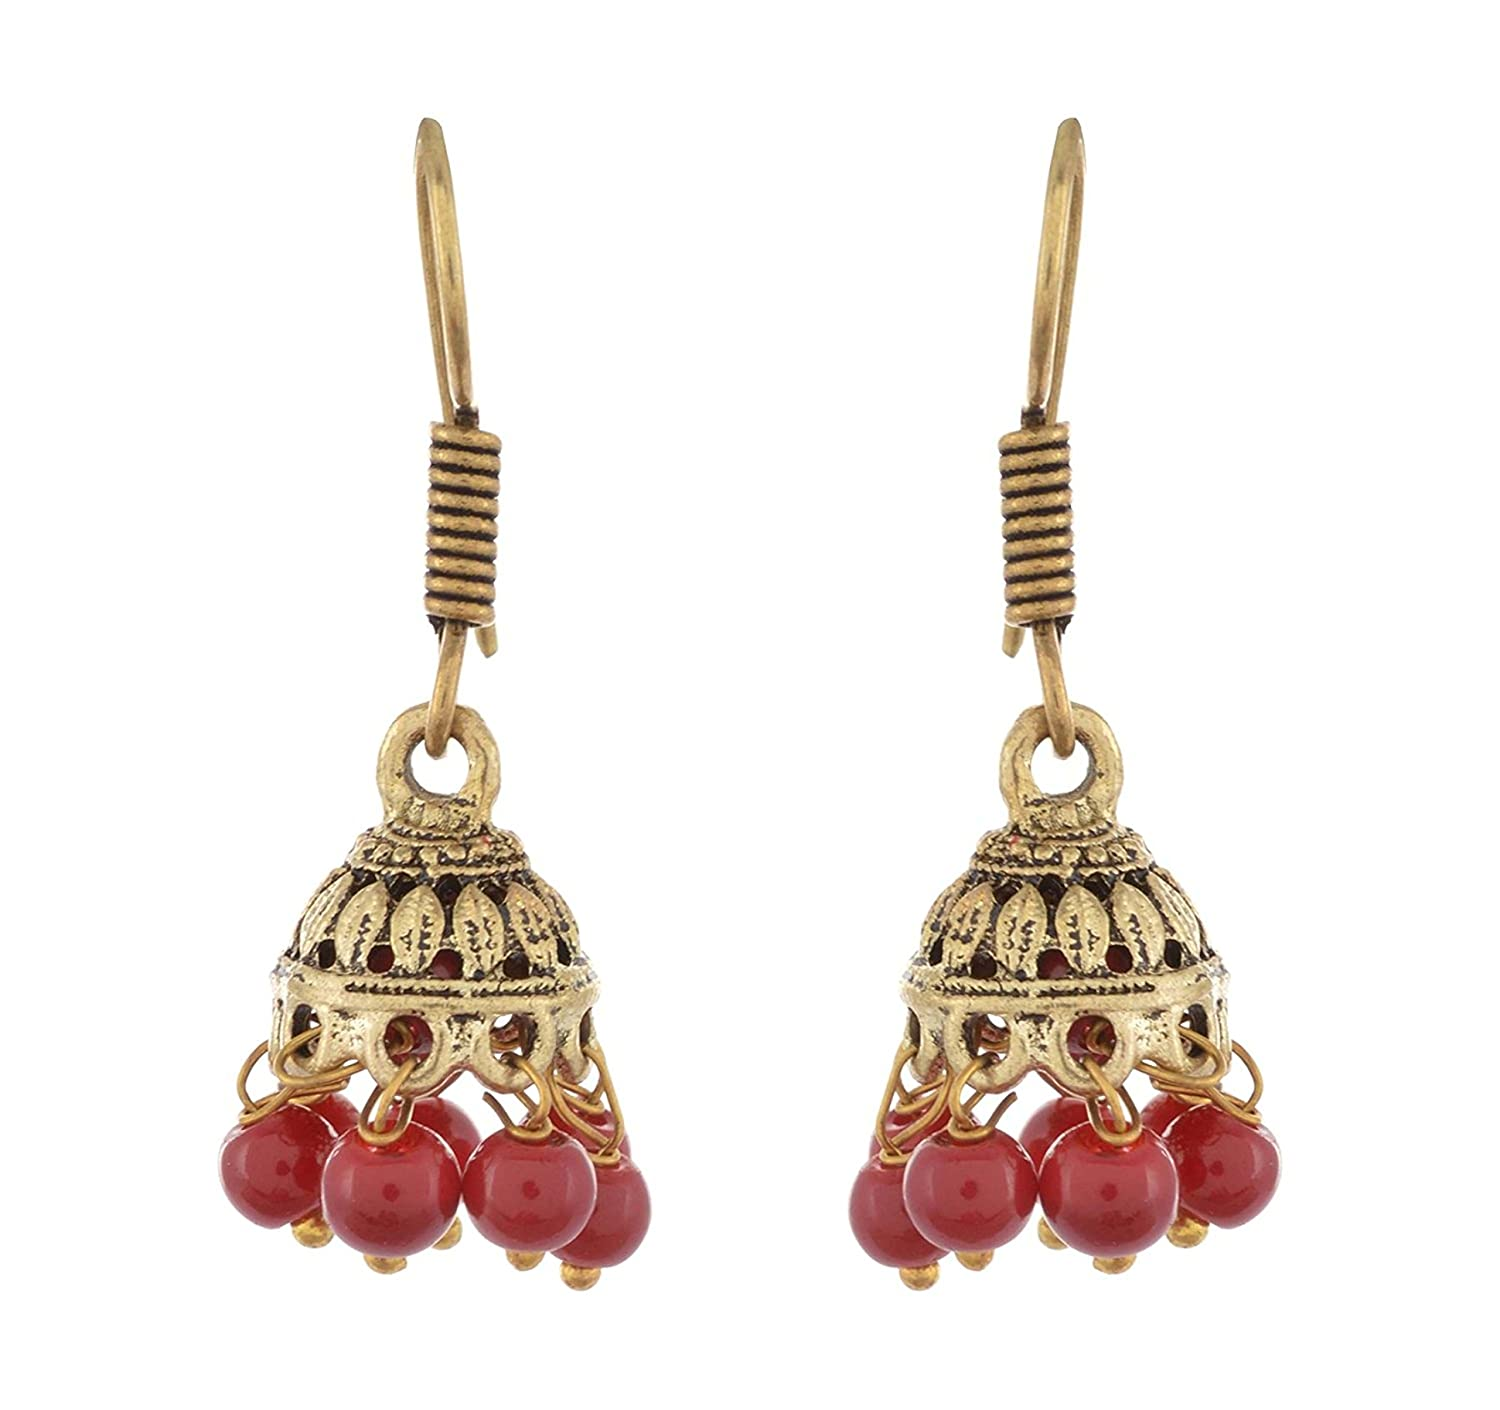 Subharpit Red Brass Metal Indian Traditional Small Jhumka Jhumki Earrings for Women /& Girls